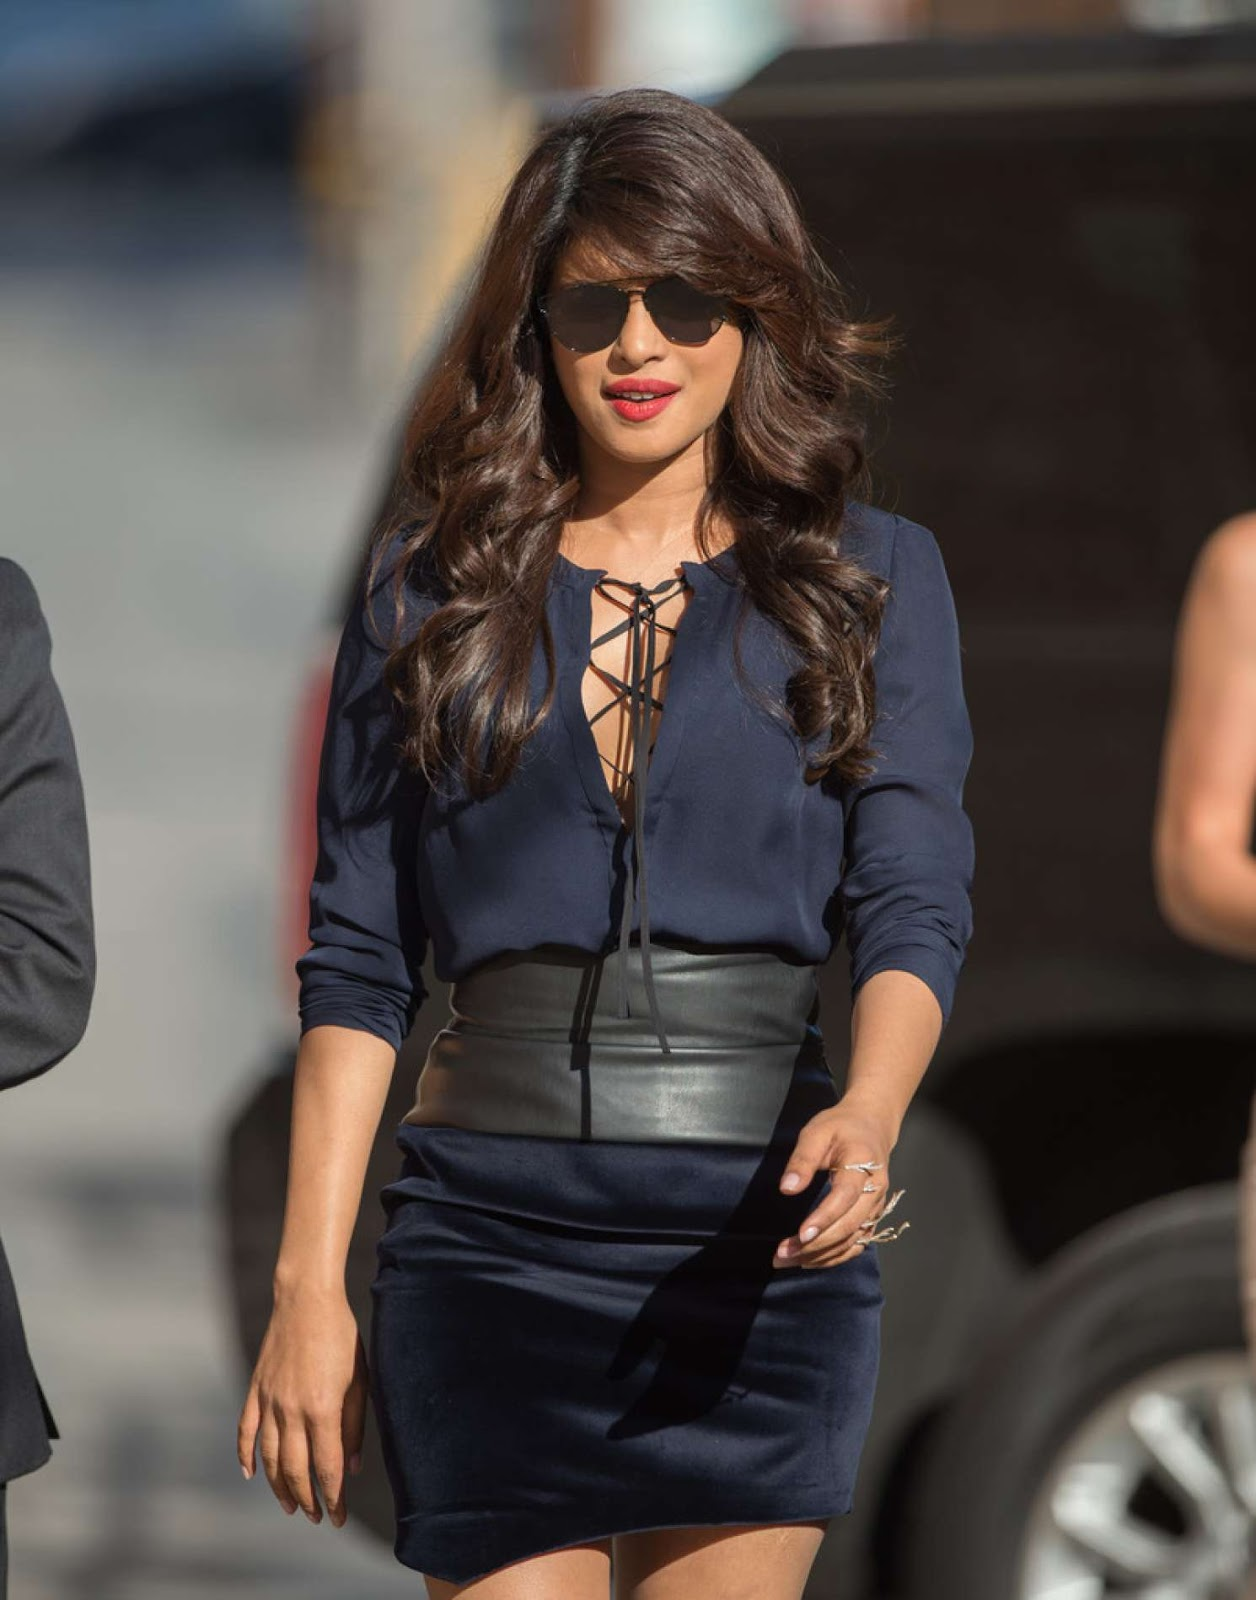 priyanka chopra - photo #32